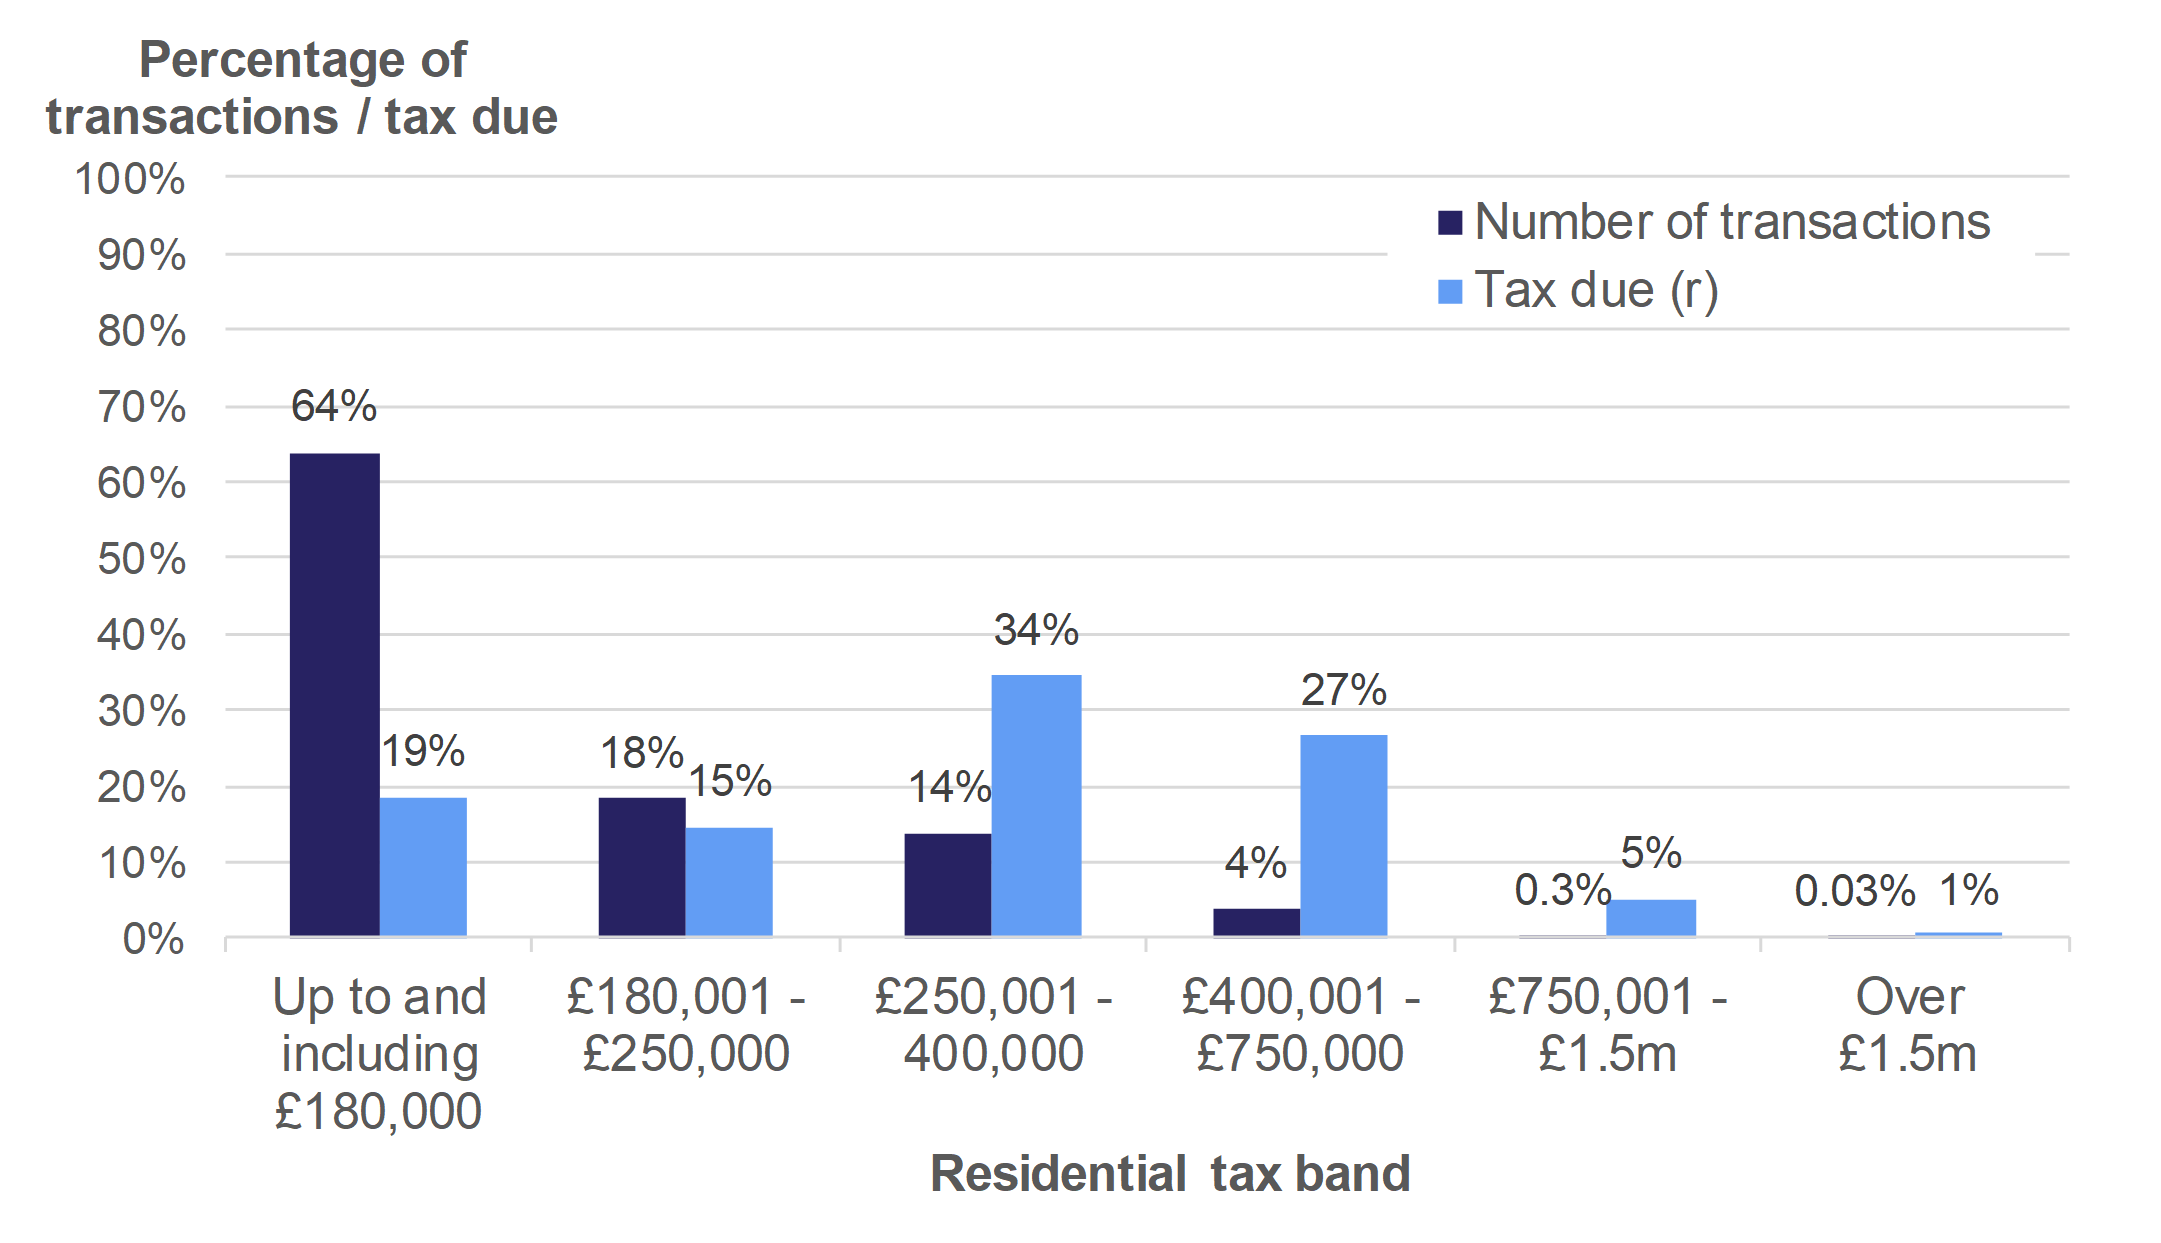 Figure 3.1 shows the number of residential transactions and amount of tax due, by residential tax band. Data is presented as the percentage of transactions or tax due and relates to transactions effective in April 2018 to March 2019.